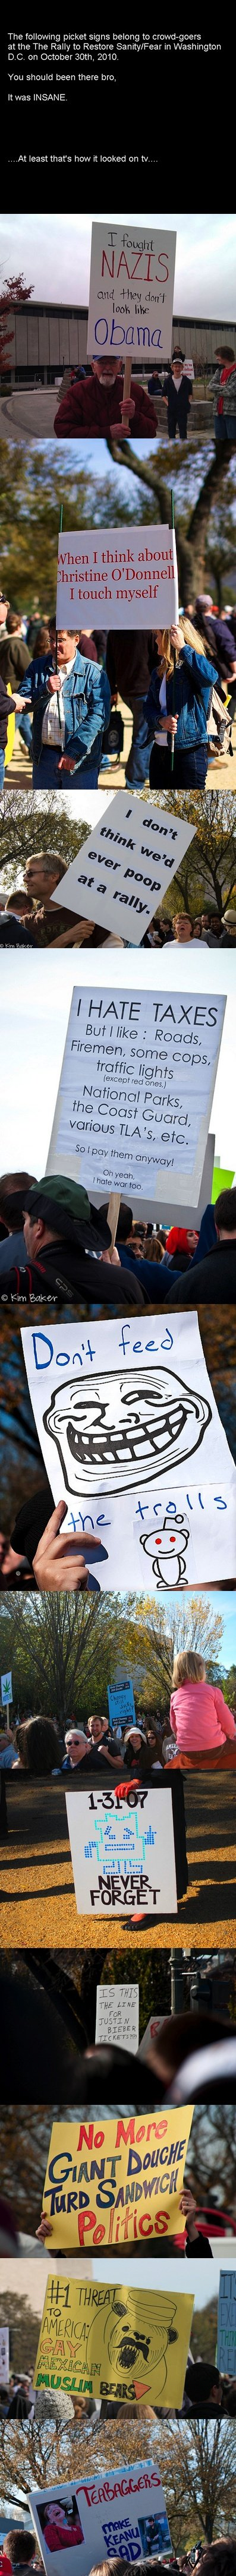 Jon Stewart Rally Signs. I'll make more if gets good reception.. The following picket signs belong to at the The Rally to Feature Sanity/ Fear in Washington DAD